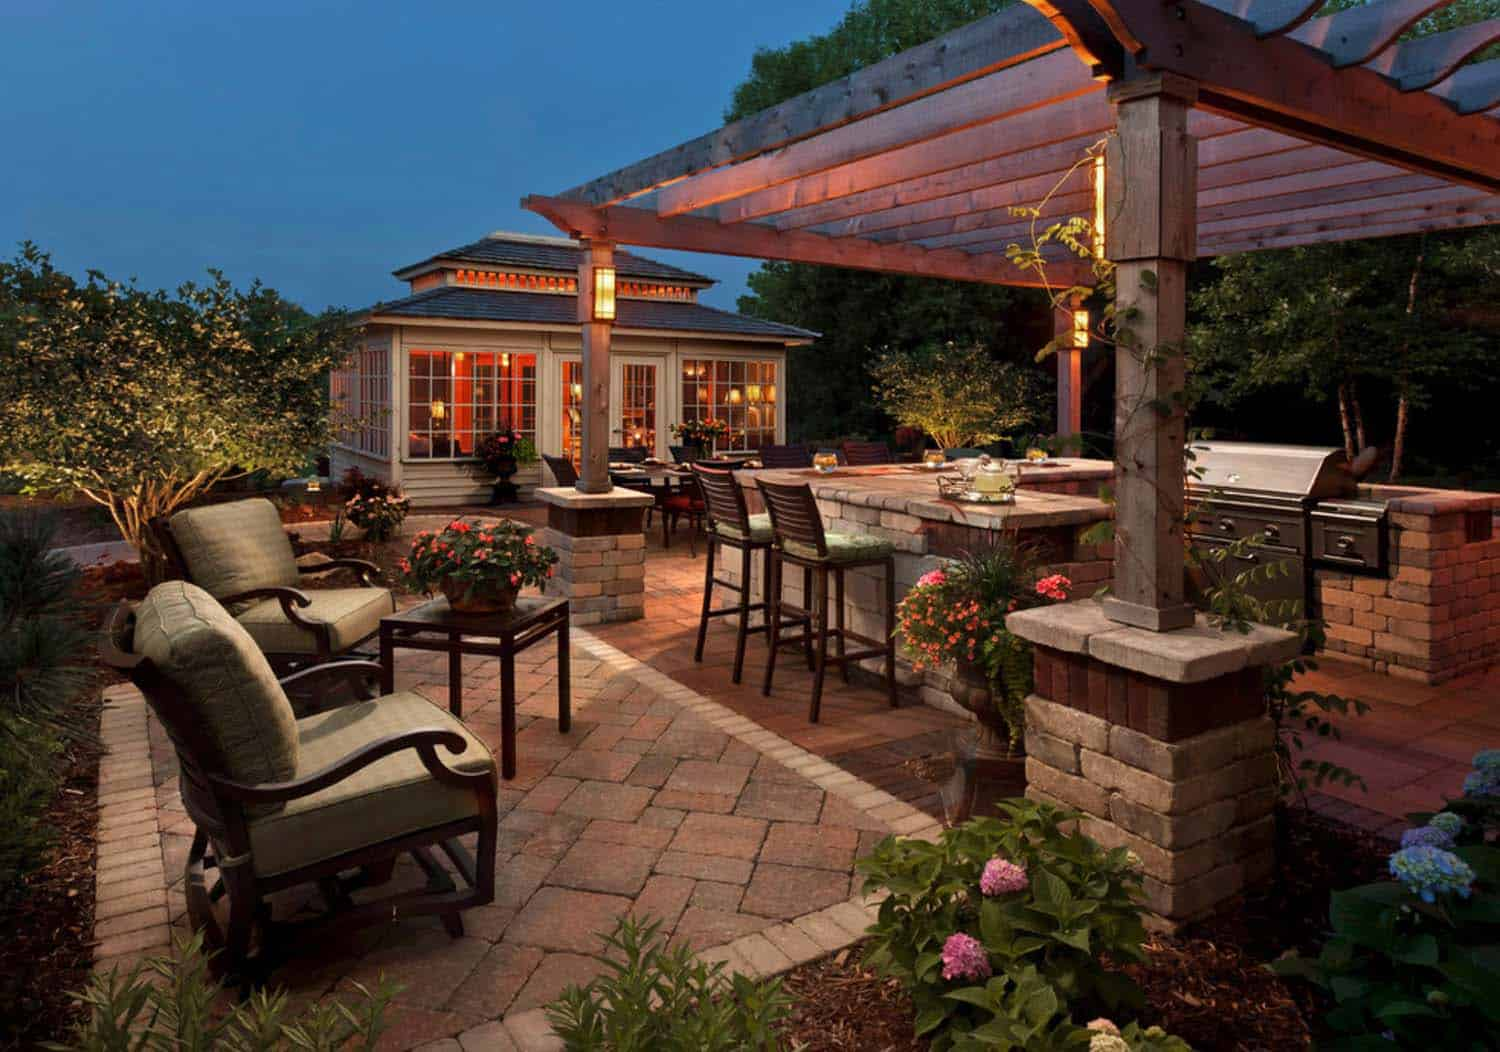 44 Traditional outdoor patio designs to capture your ... on Outdoor Living Designer id=59814